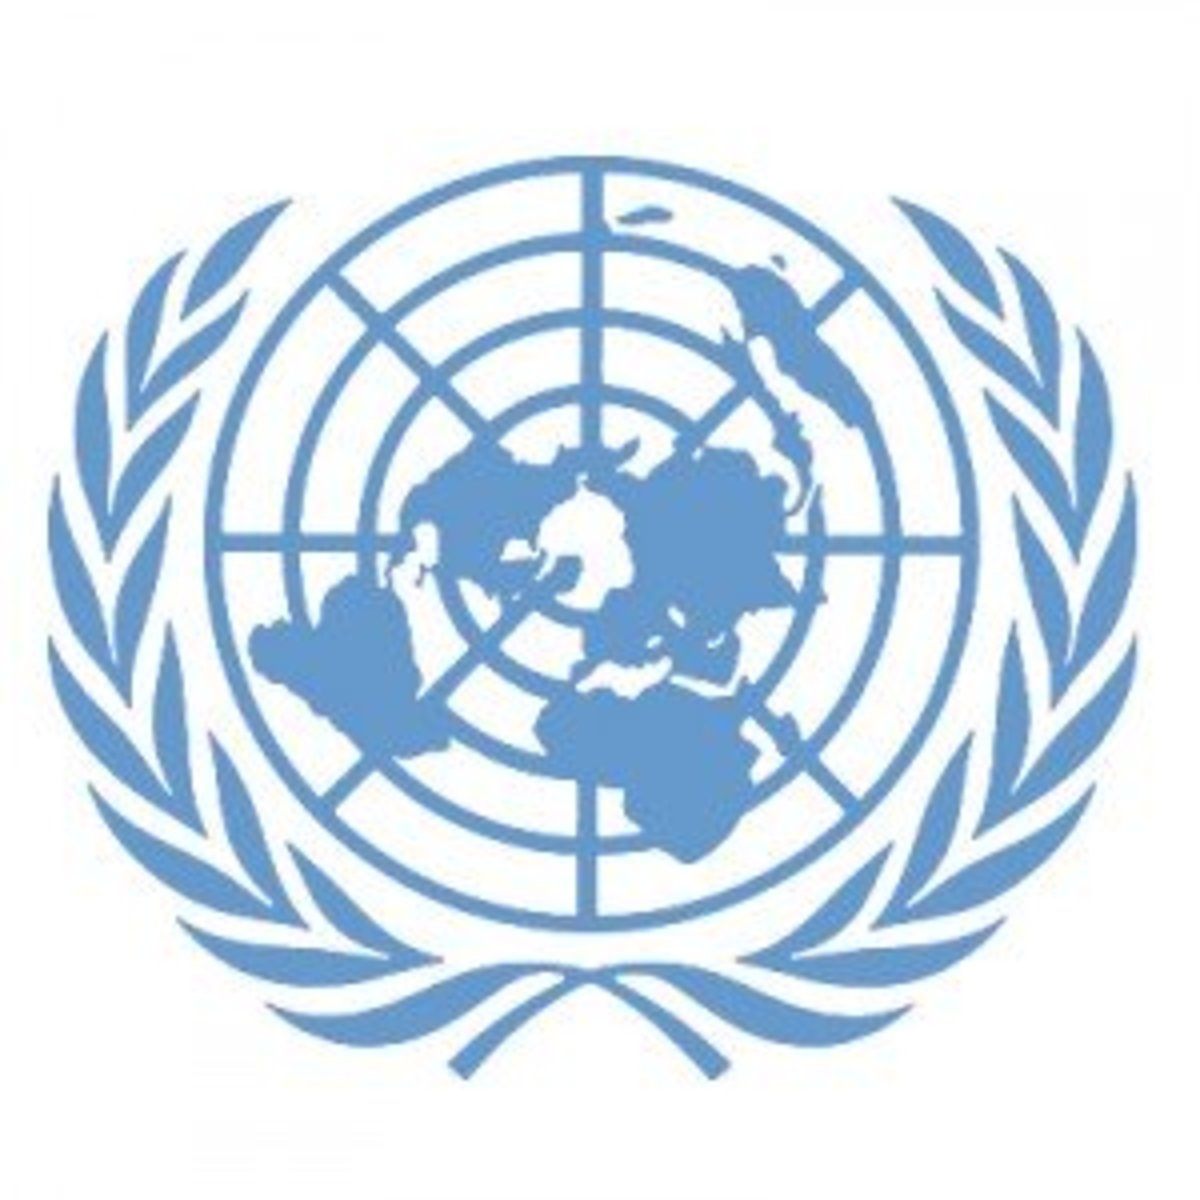 Overview of the International Peace United Nations Organization